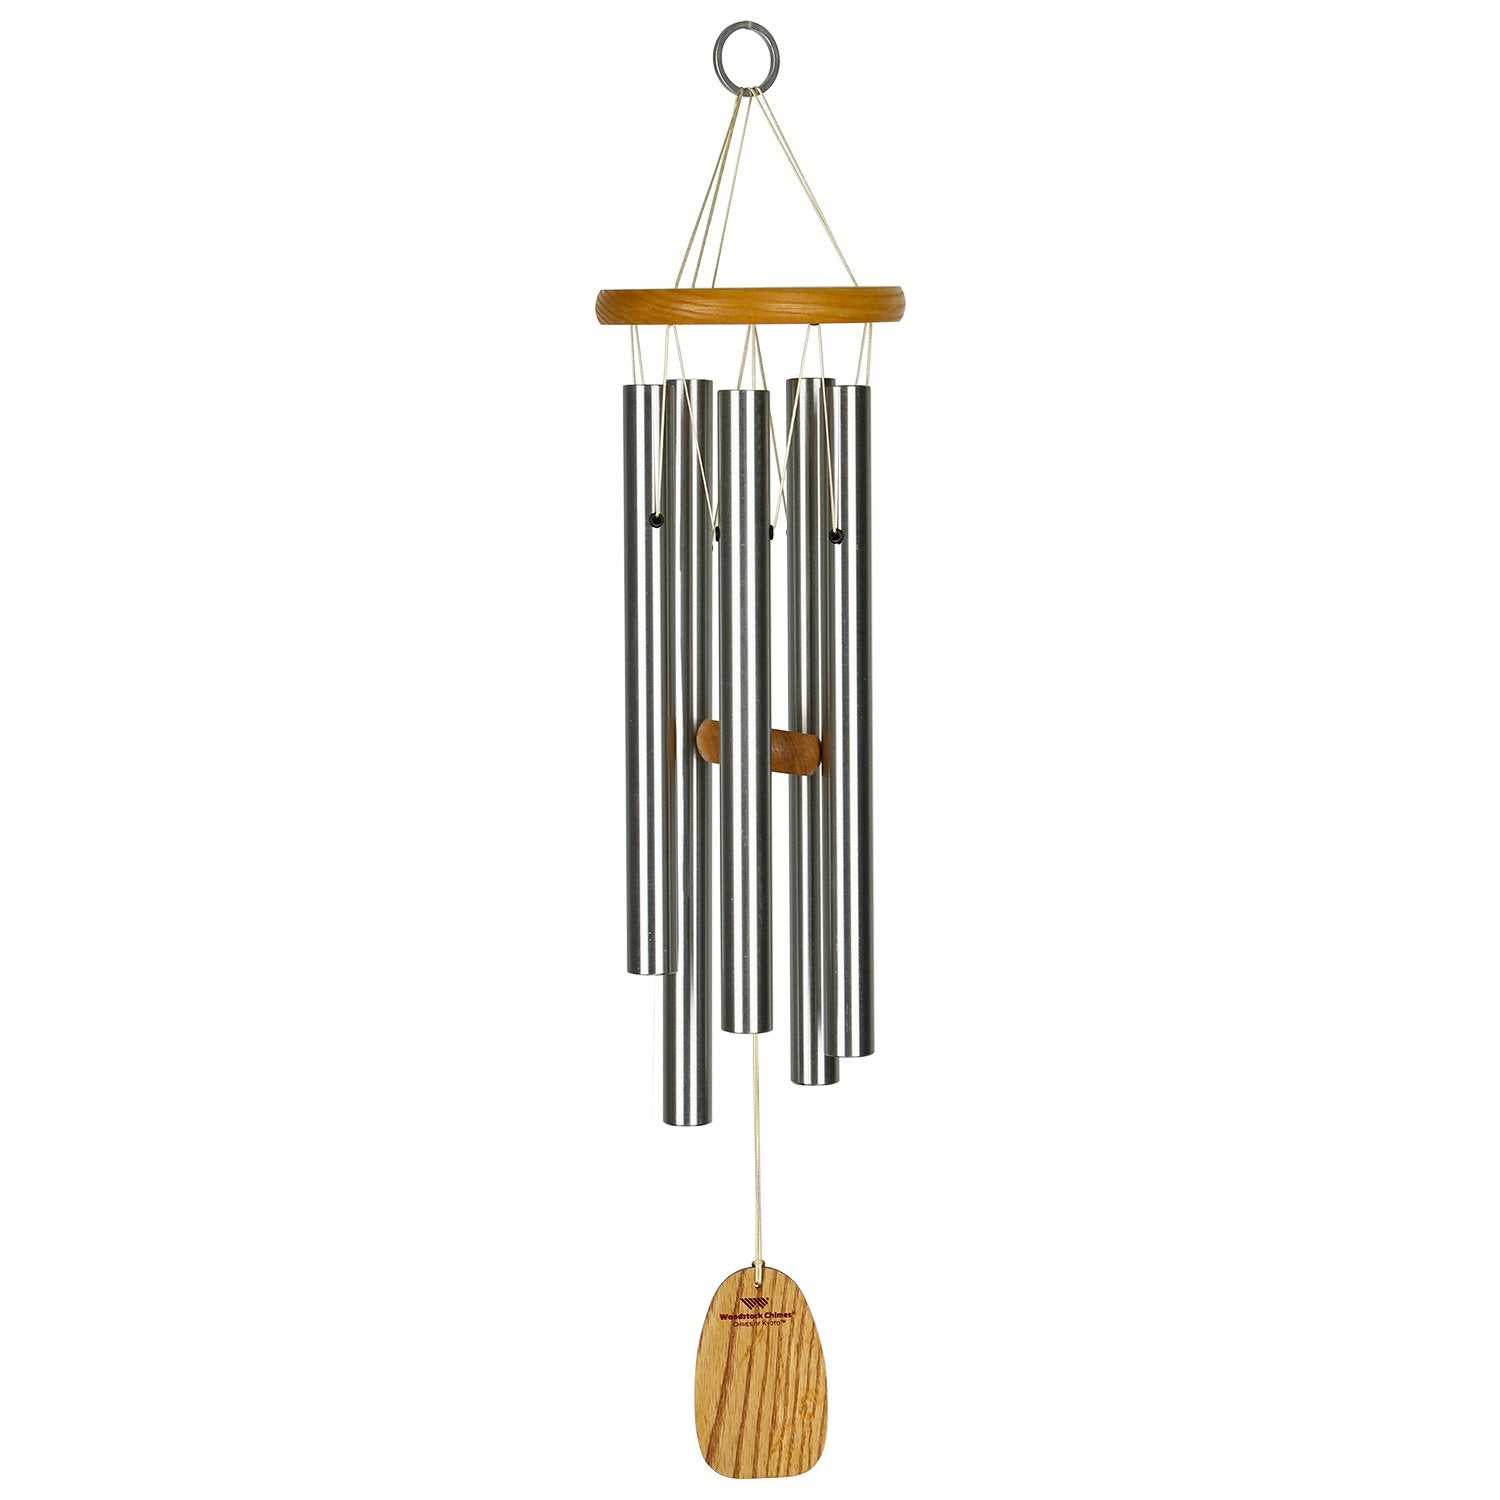 Chimes of Kyoto full product image